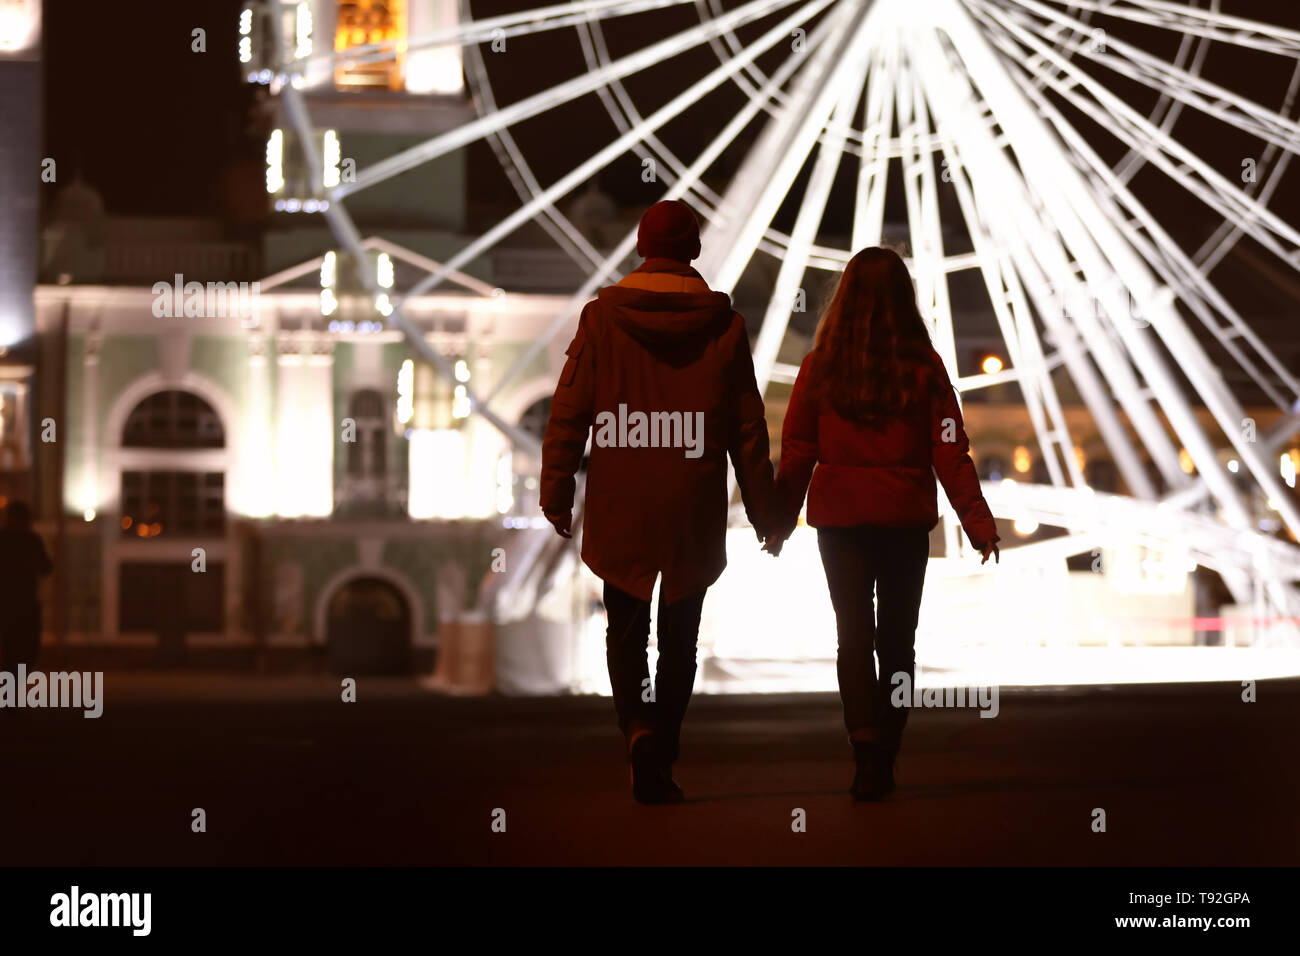 Loving Young Couple On Romantic Date Near Ferris Wheel In Evening Stock Photo Alamy